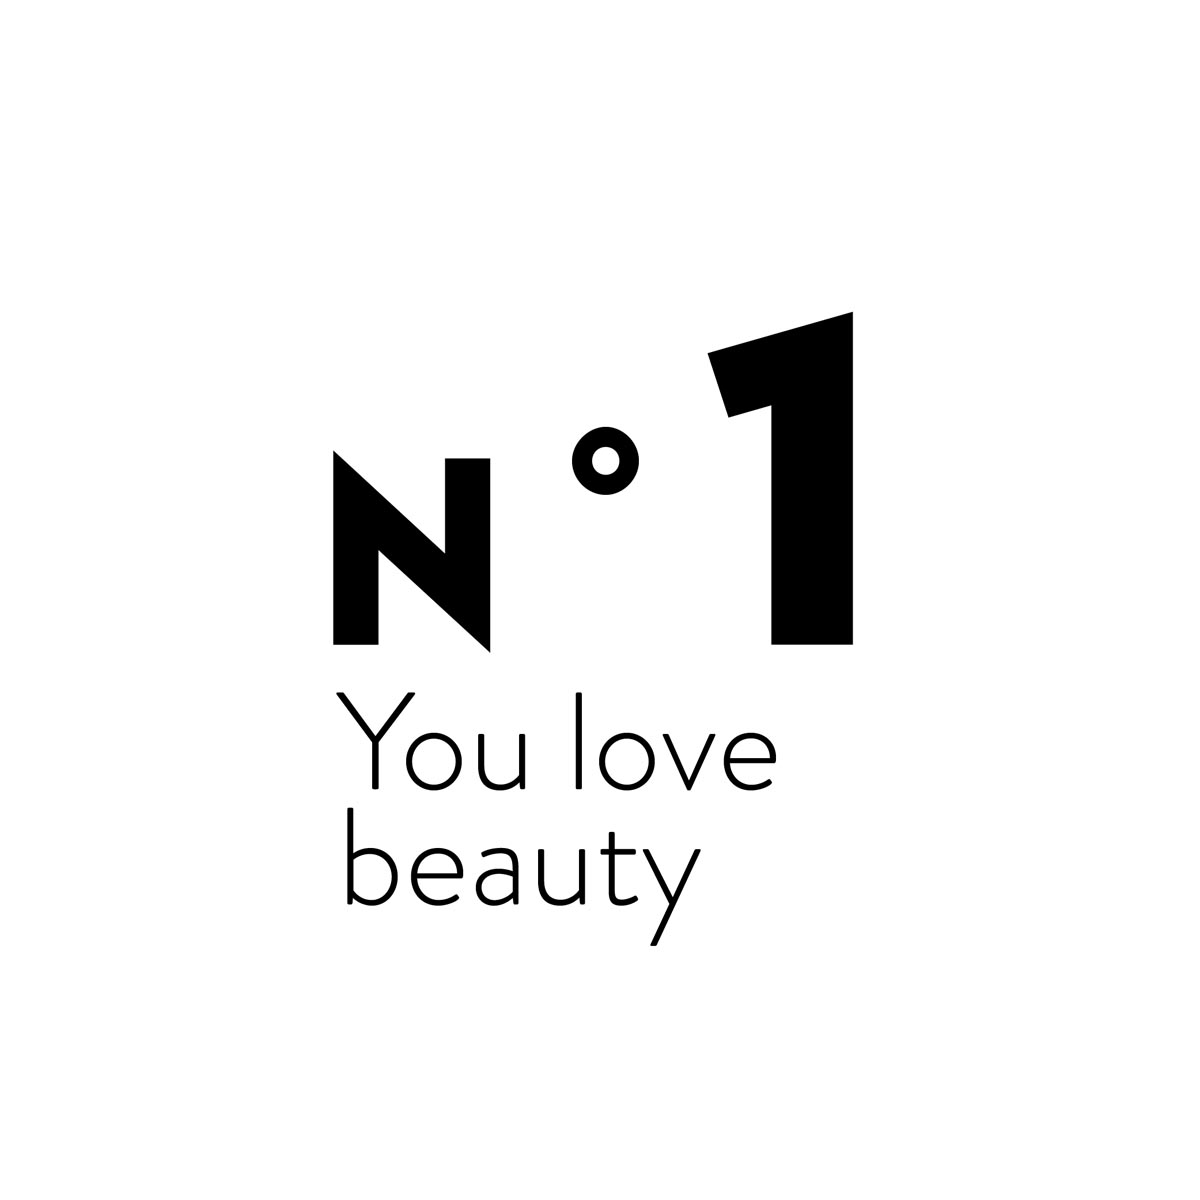 You Love Beauty - You love beautiful things. You seek and find beauty everywhere; in nature, people, architecture and design. For you beauty is not an option. It's a way of life.